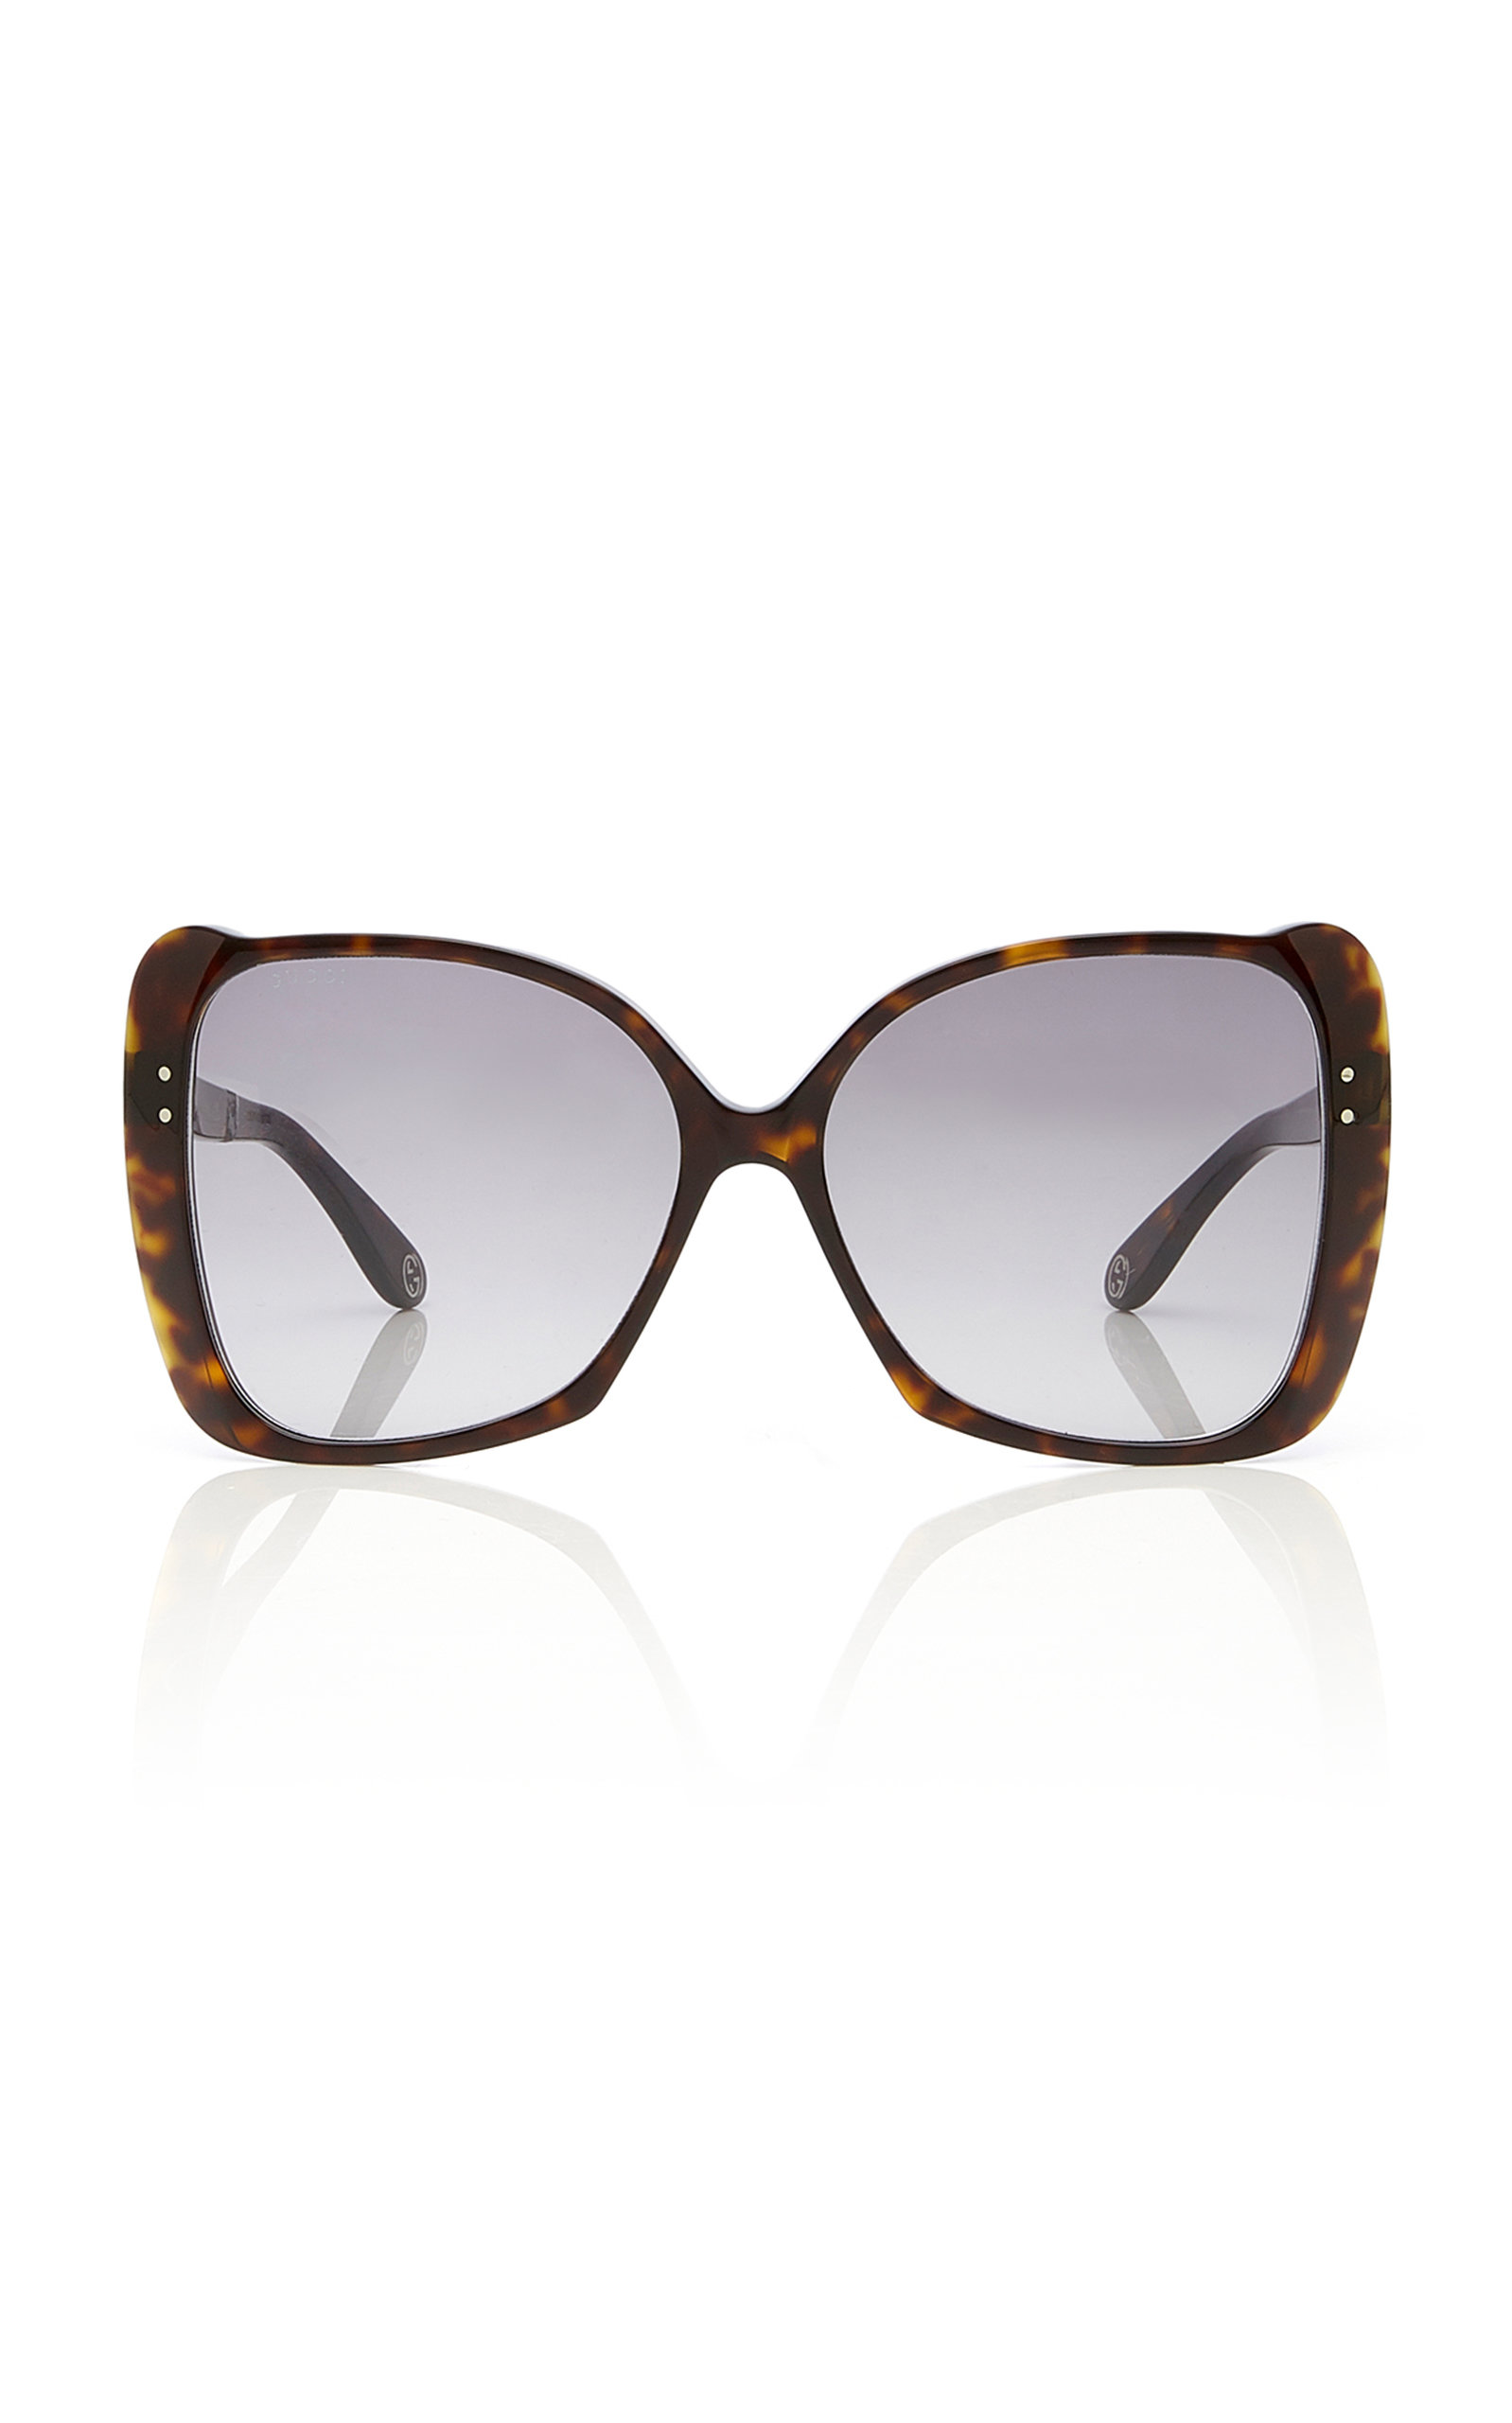 632c3328a485 Butterfly-Frame Tortoiseshell Acetate Sunglasses by Gucci   Moda ...